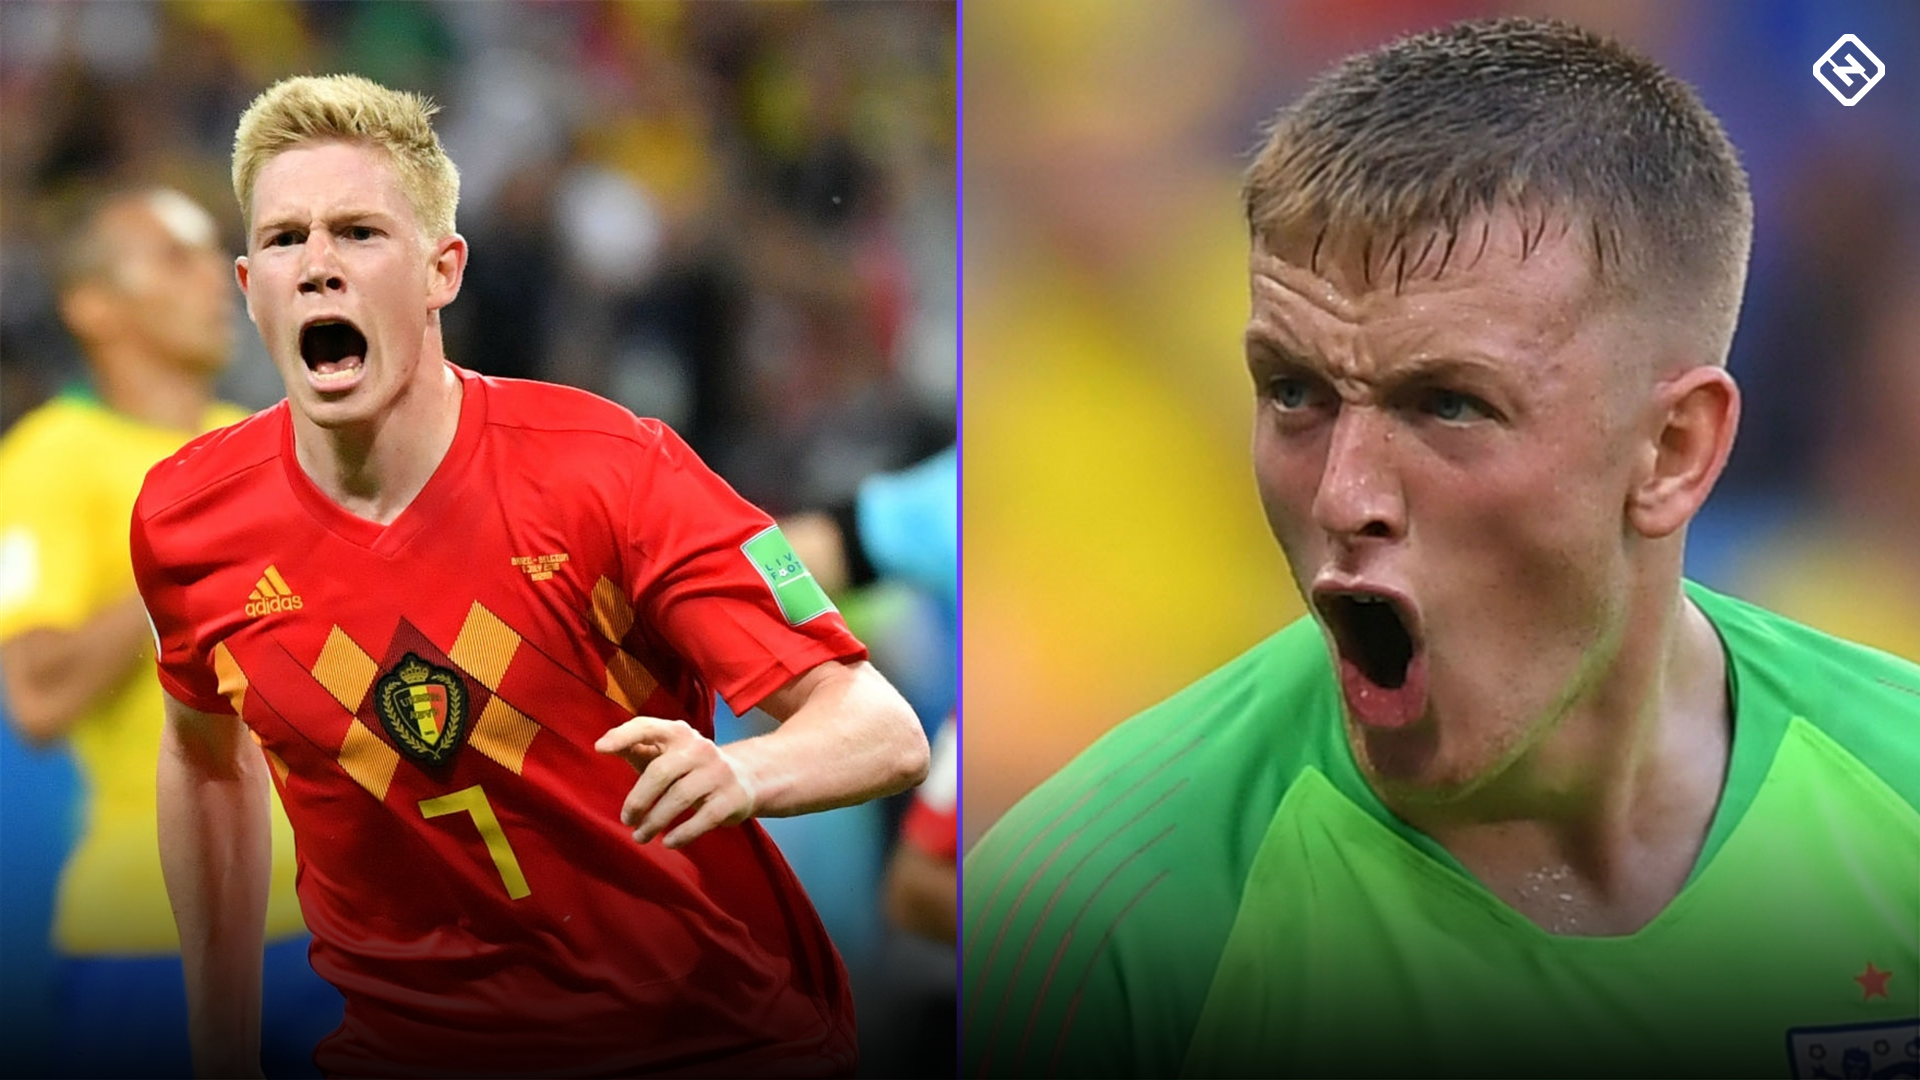 Belgium vs. England live: Highlights from World Cup third place playoff